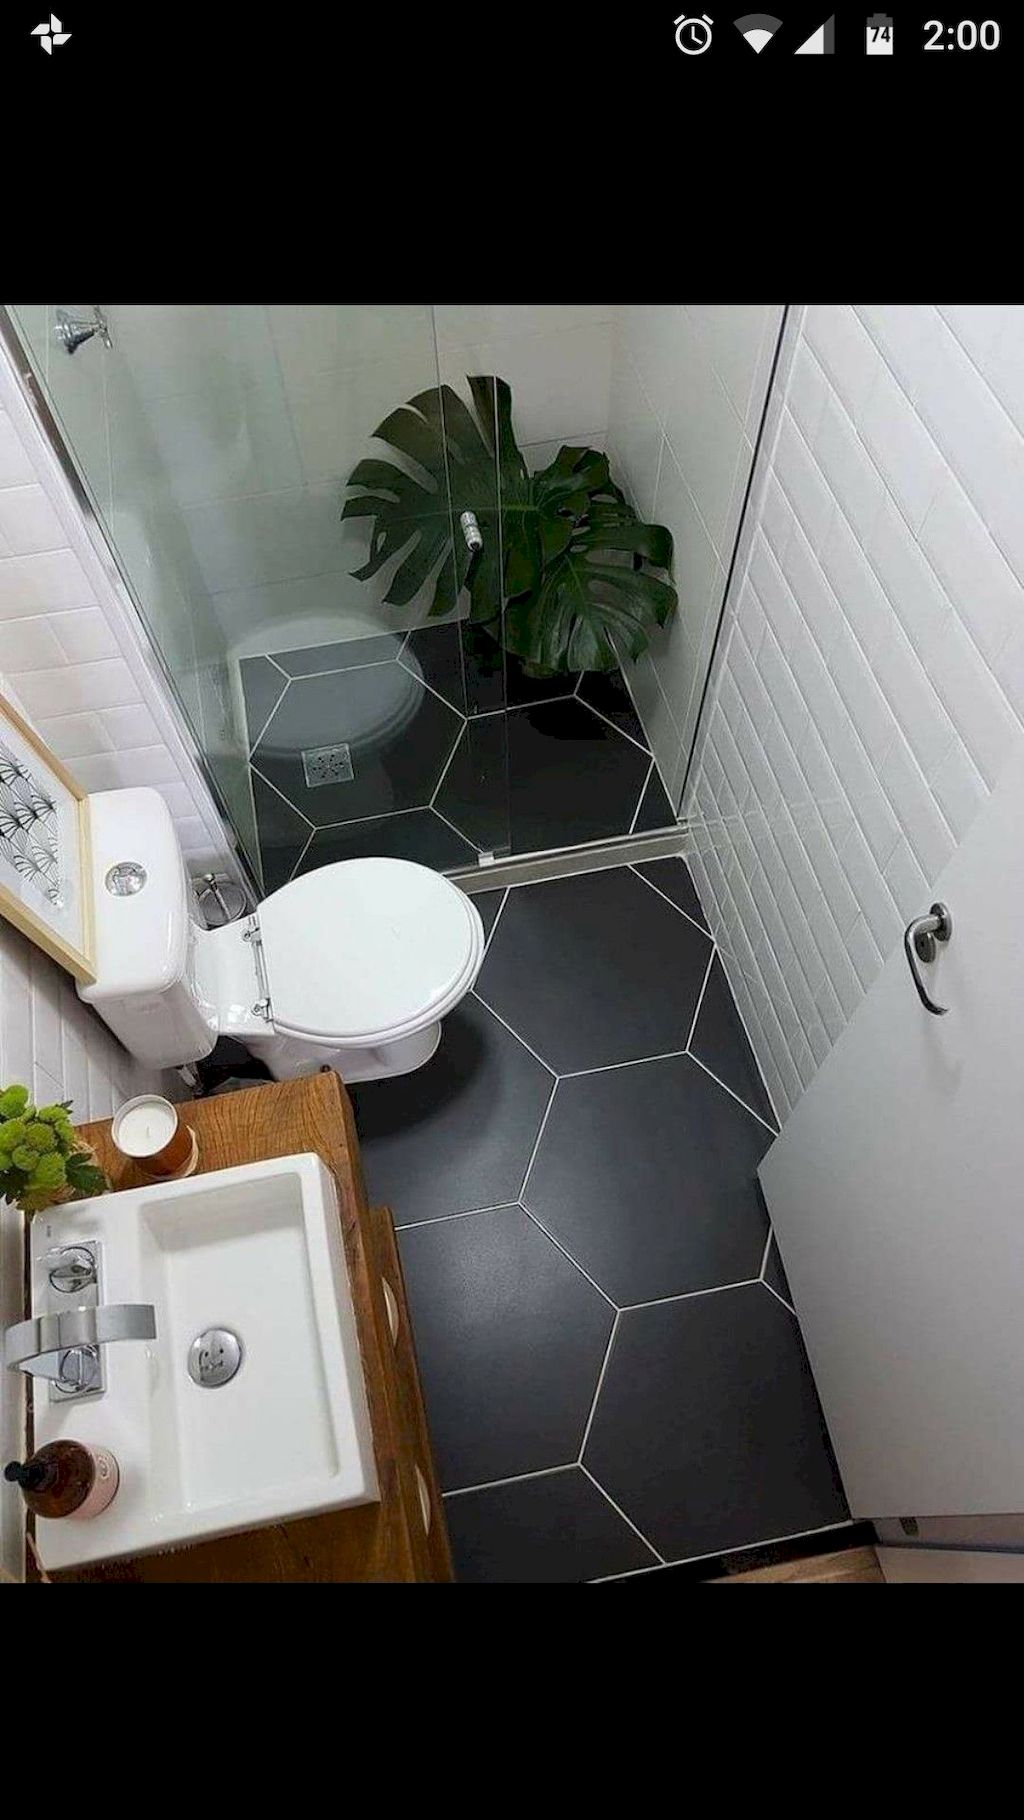 70+ Tiles Ideas for Small Bathroom - Get more Ideas in our gallery | #smallbathroom #bathroomdecoration #bathroomideas #bathroomtiles #bathroomdecor #homedecor (84)